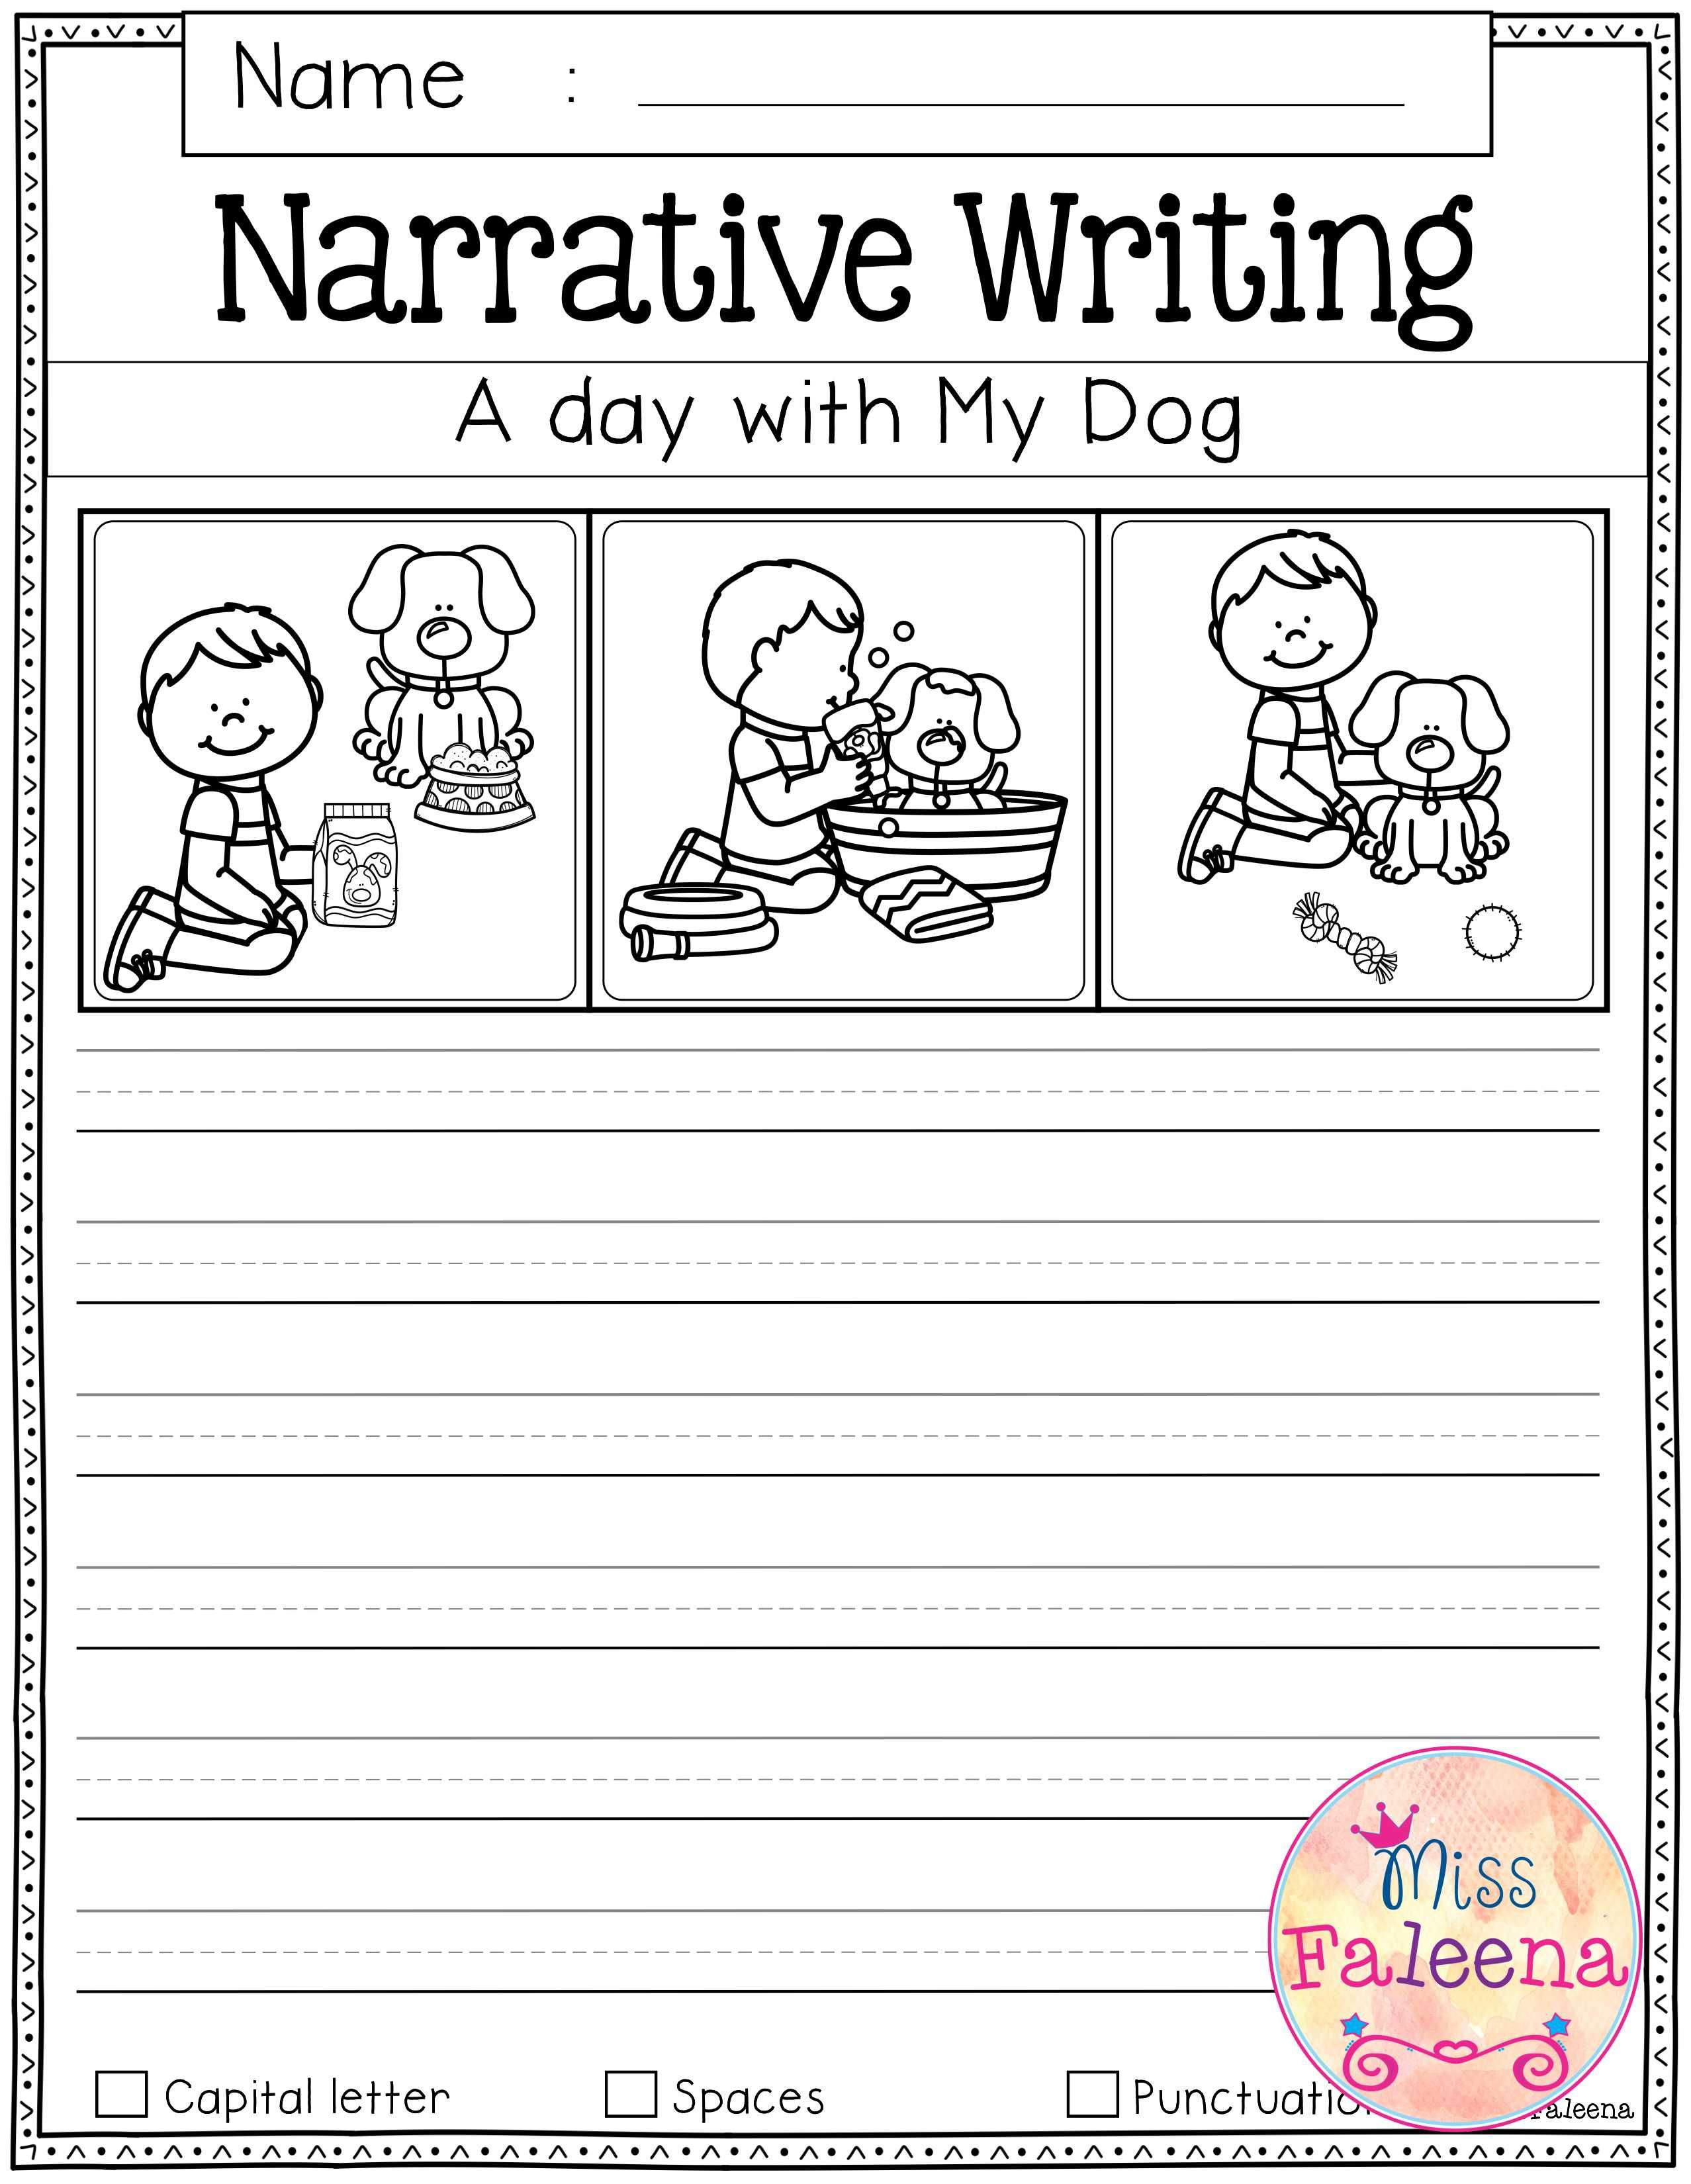 15 Best Kindergarten Narrative Writing Sample Images On